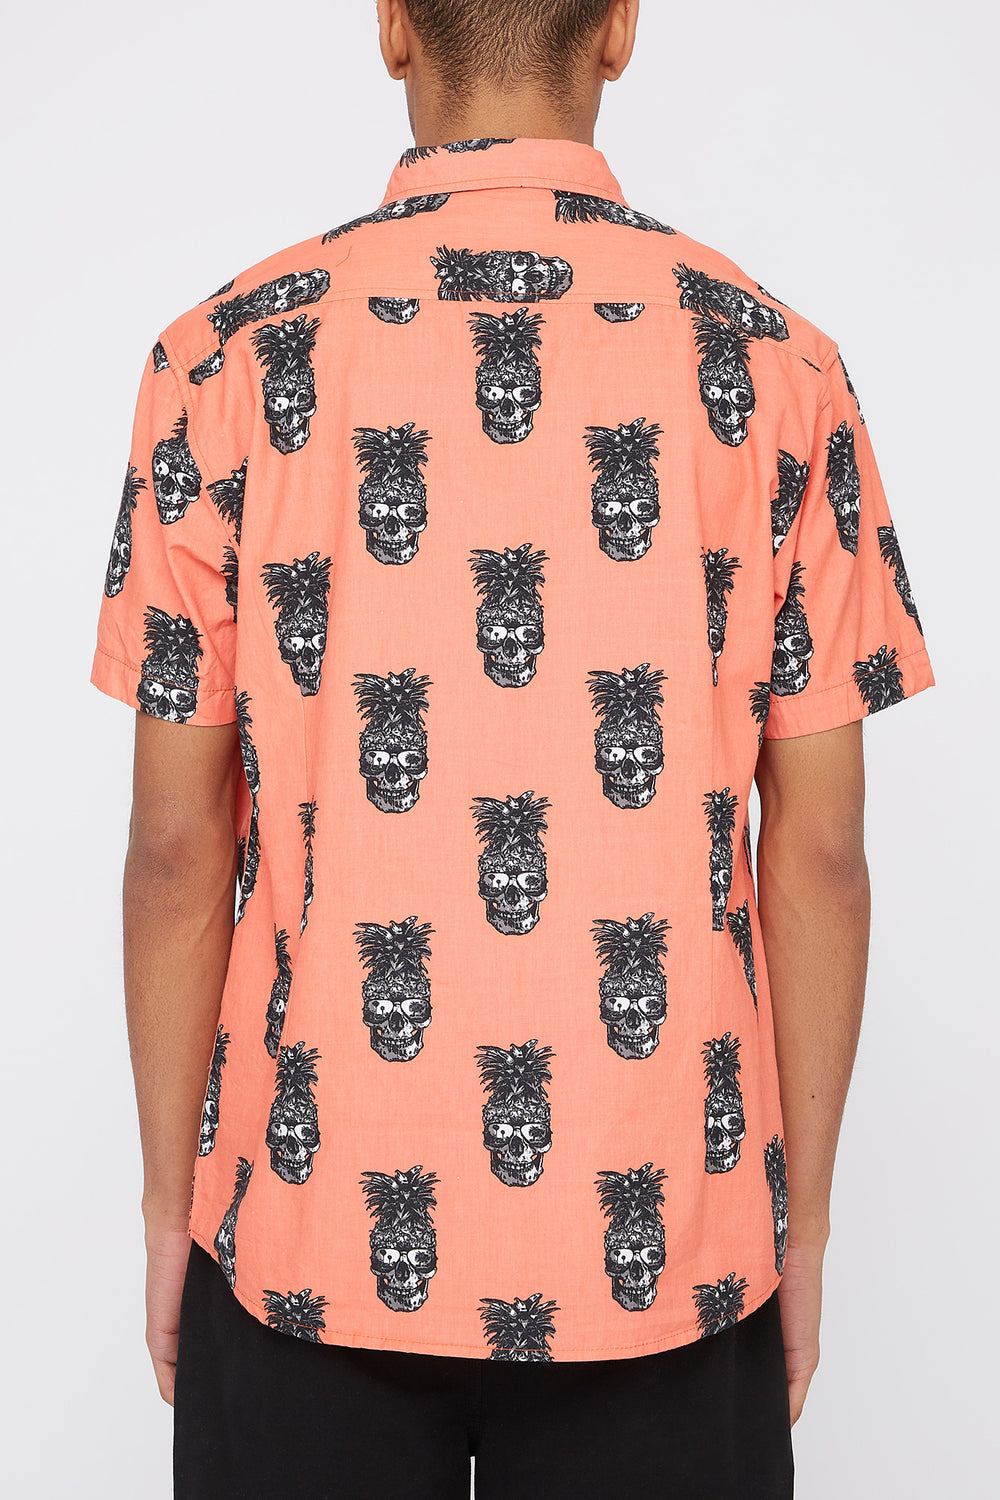 Artistry In Motion Mens Pineapple Skull Button-Up Shirt Coral